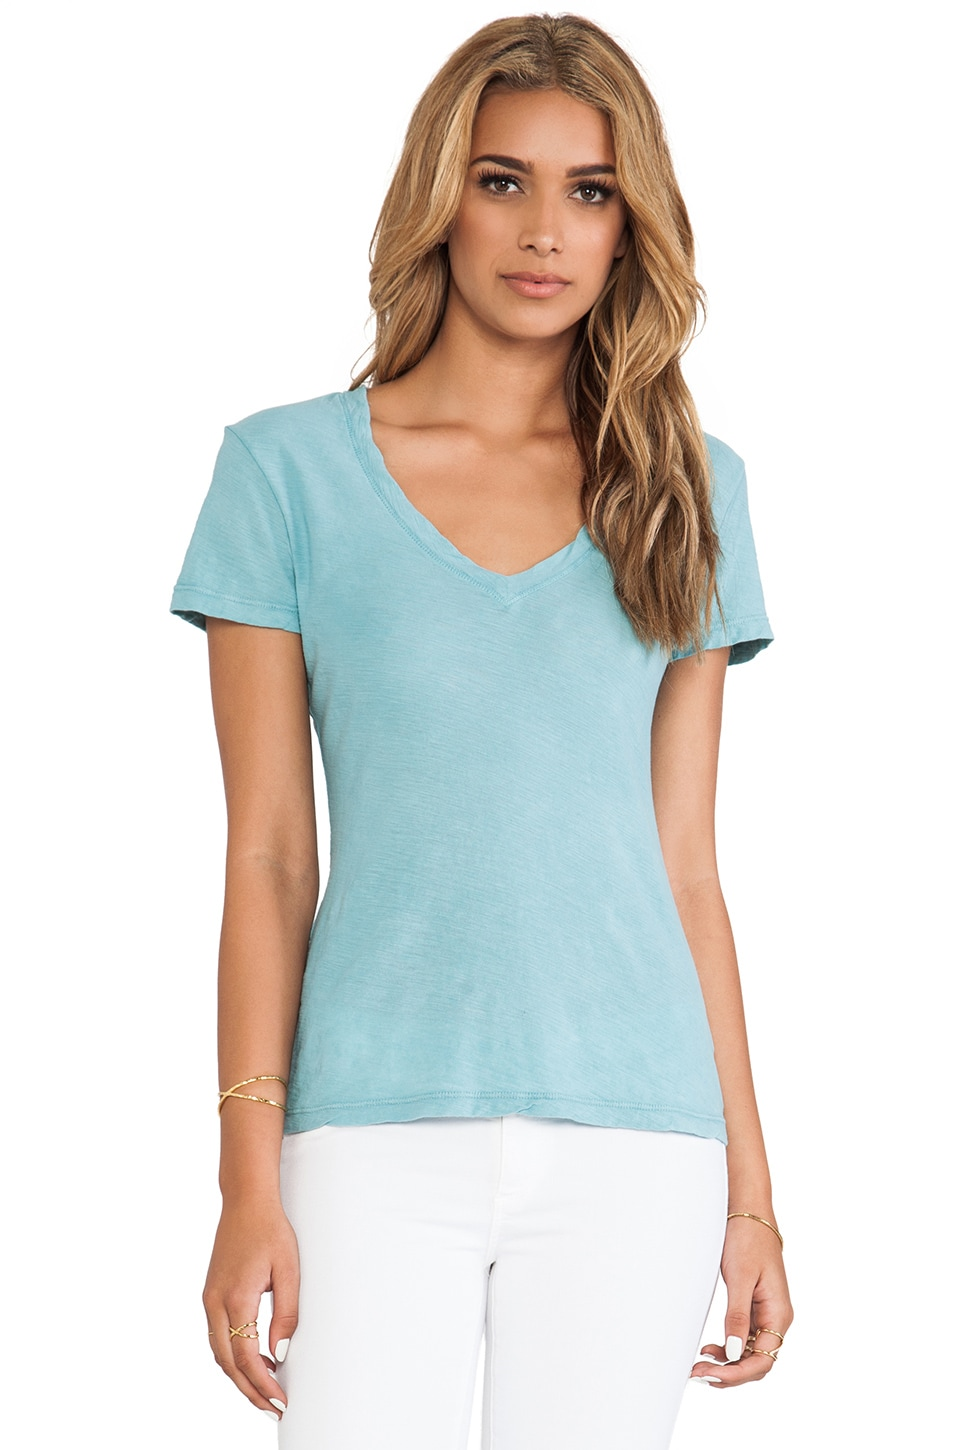 James Perse Casual Tee with Reverse Binding in Rain